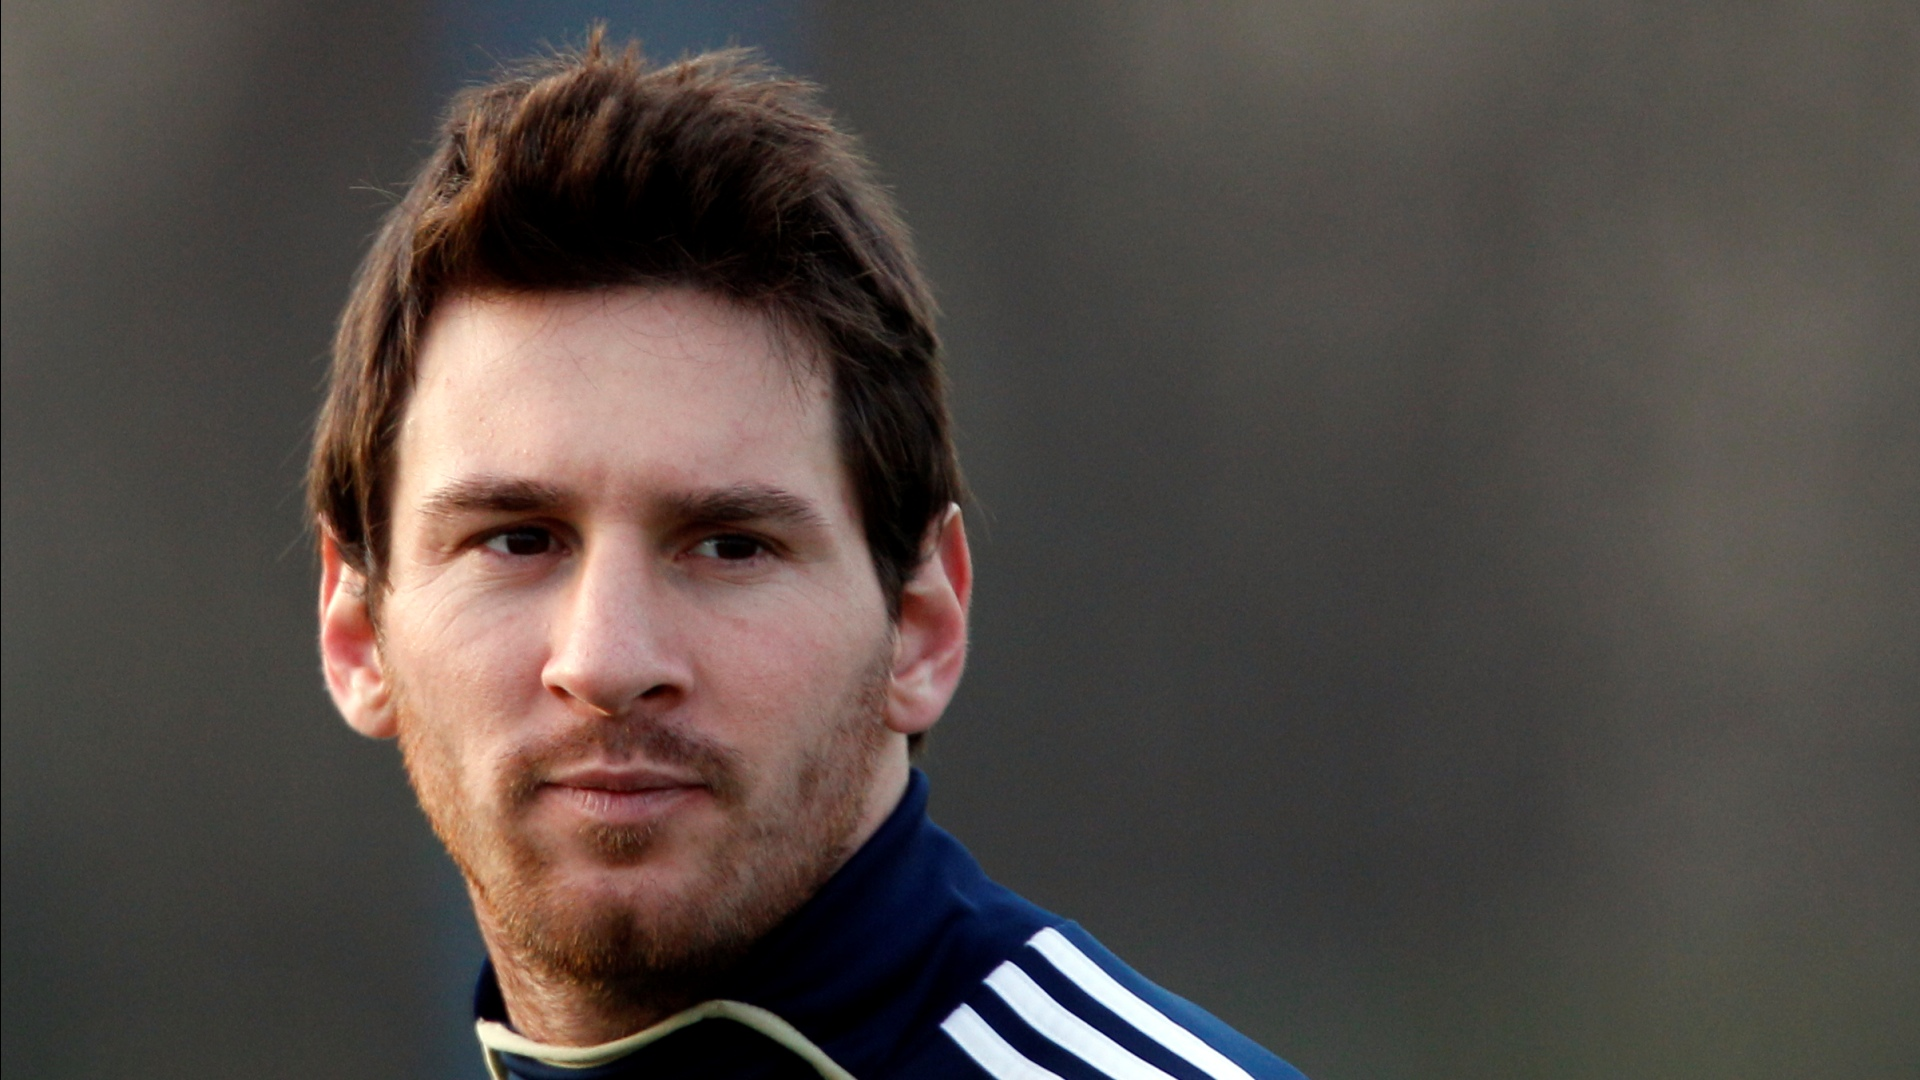 Lionel Messi 2013 Hd Wallpaper